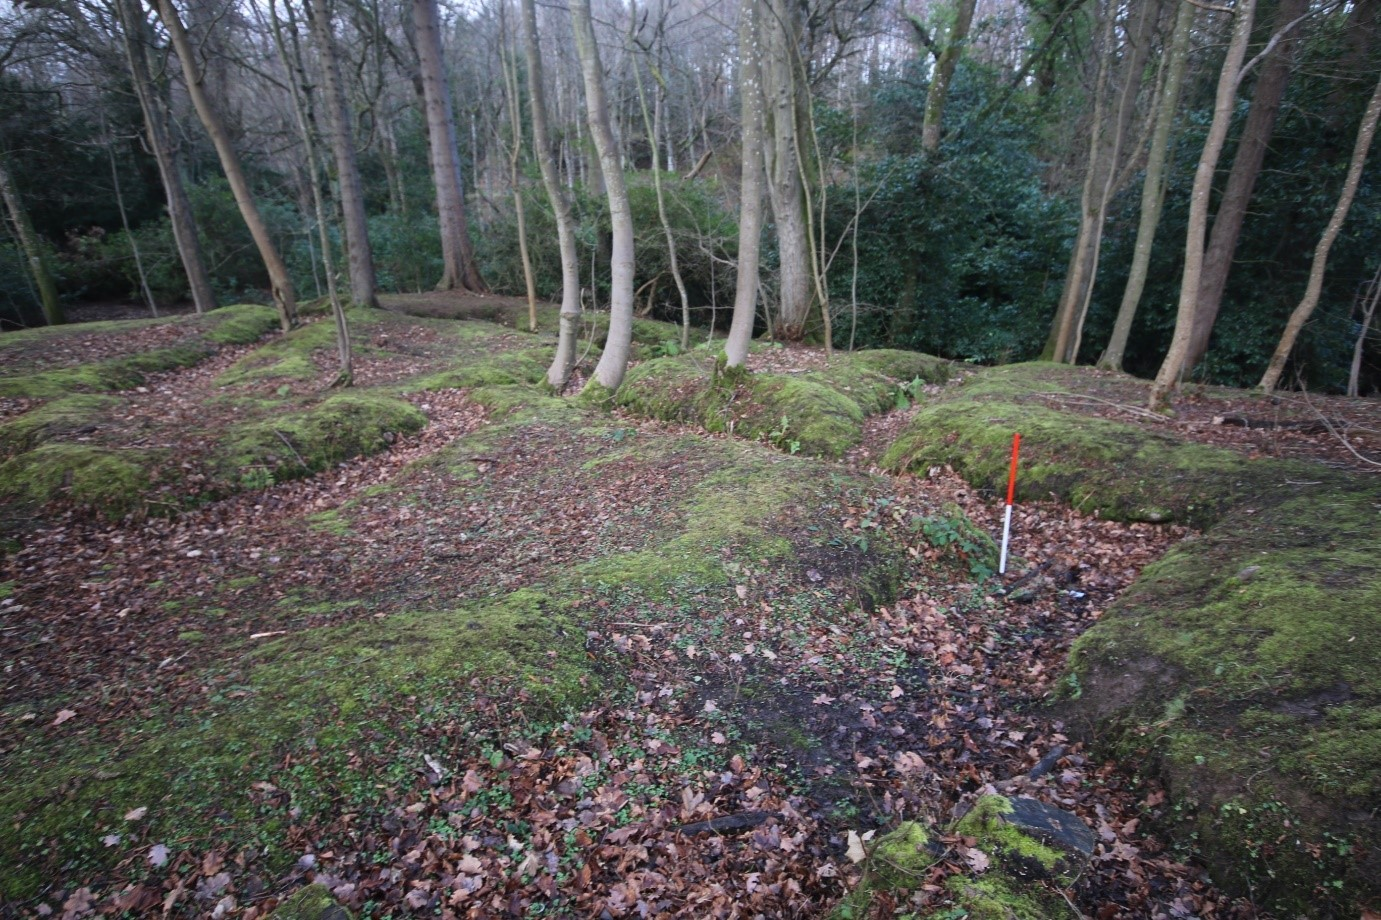 Remains of First World War training trenches in woodland near Edinburgh